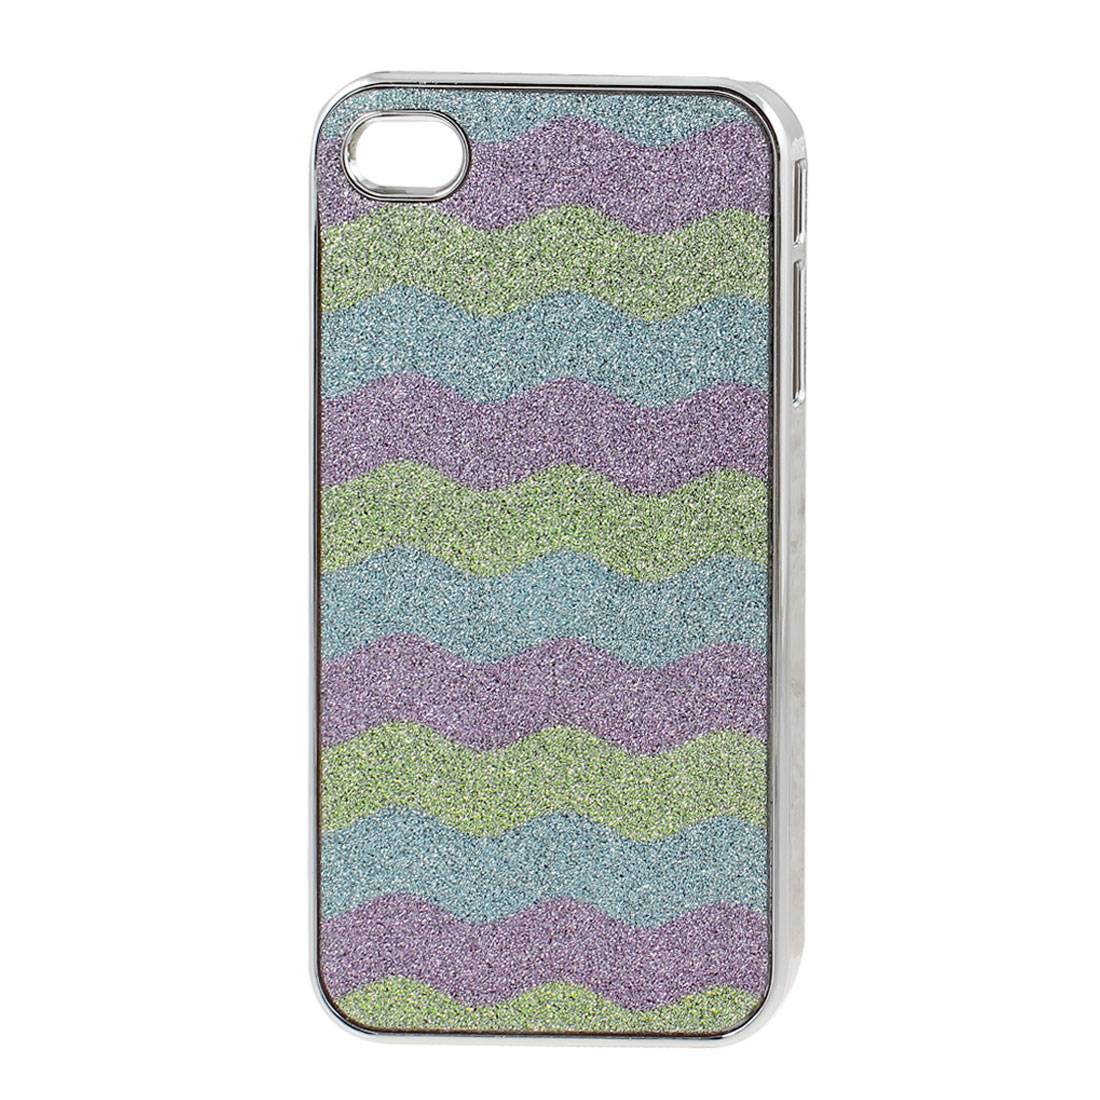 Purple Blue Green Protective Back Case Cover Shell for Apple iPhone 4 4G